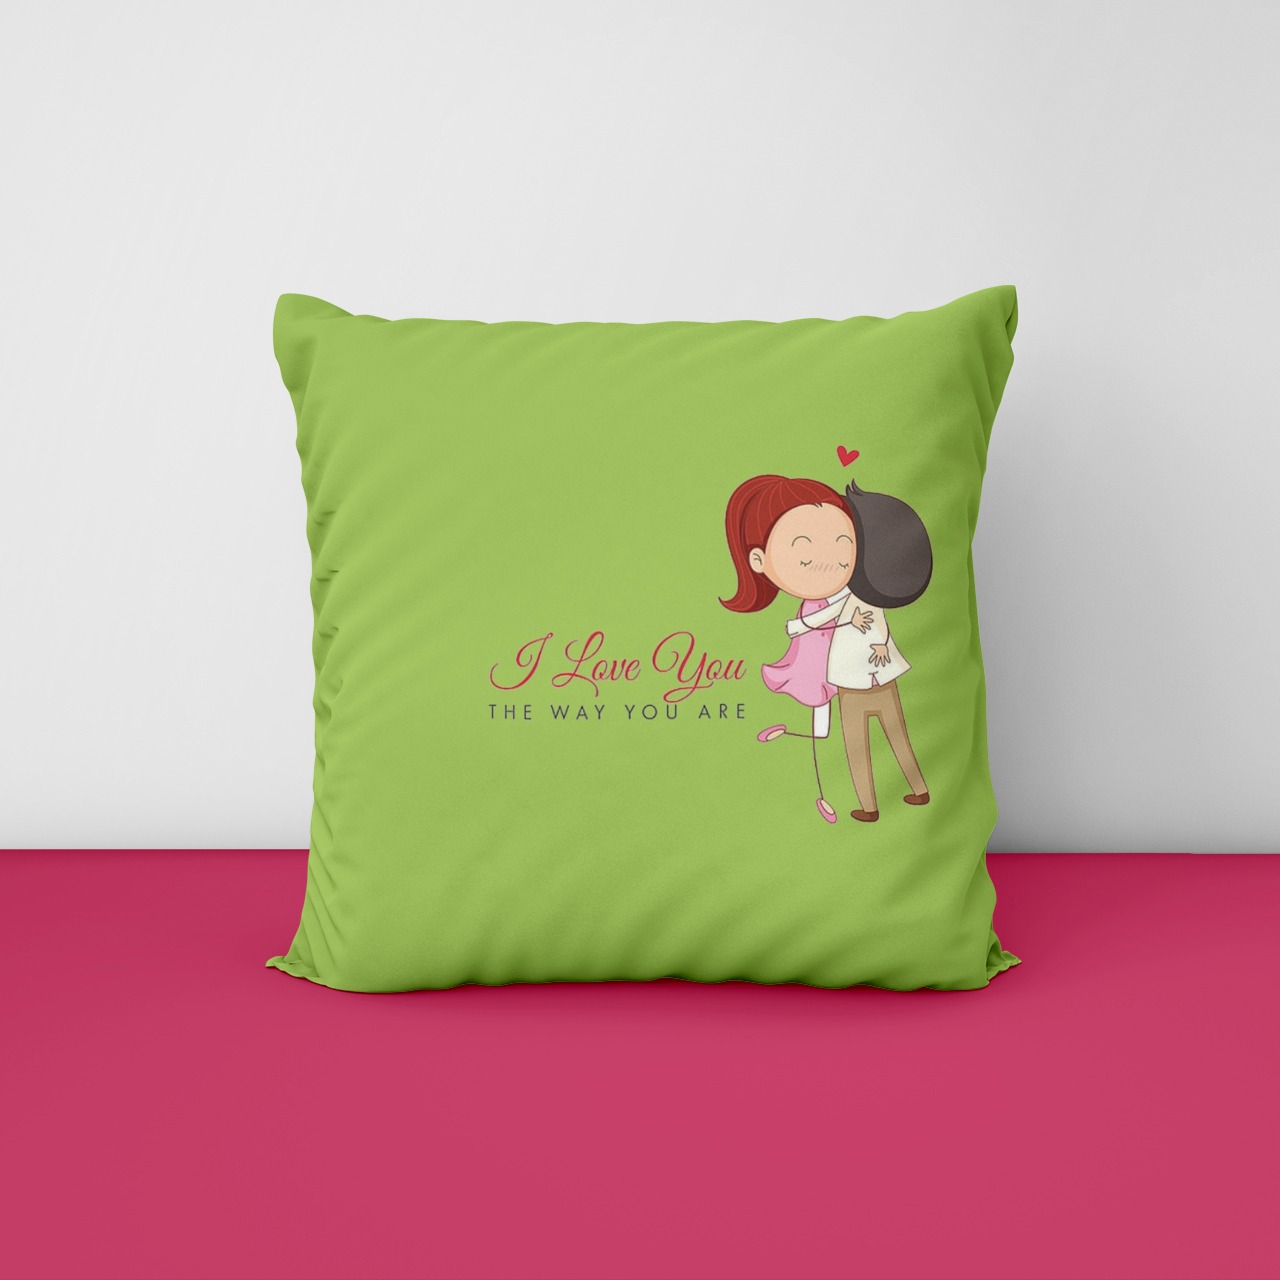 I Love You Customize Cushion